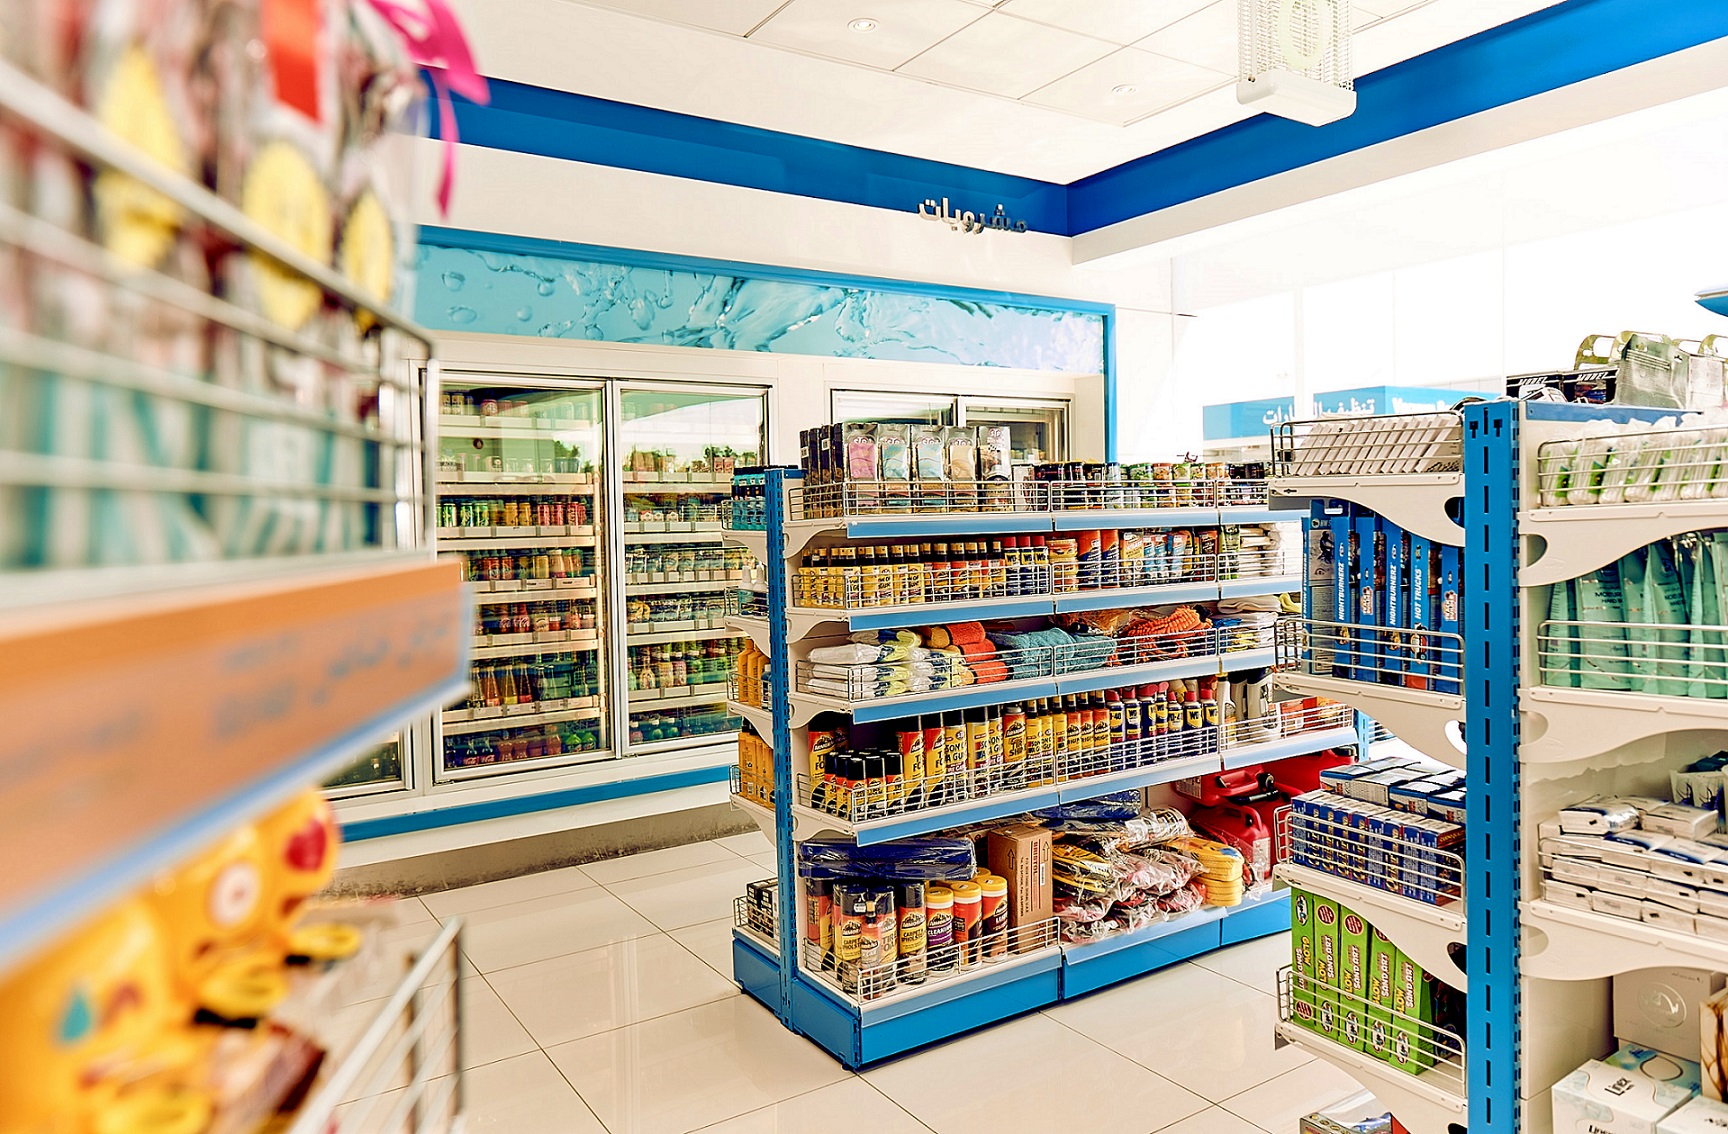 French grocer Géant will be back in the UAE - Future of retail